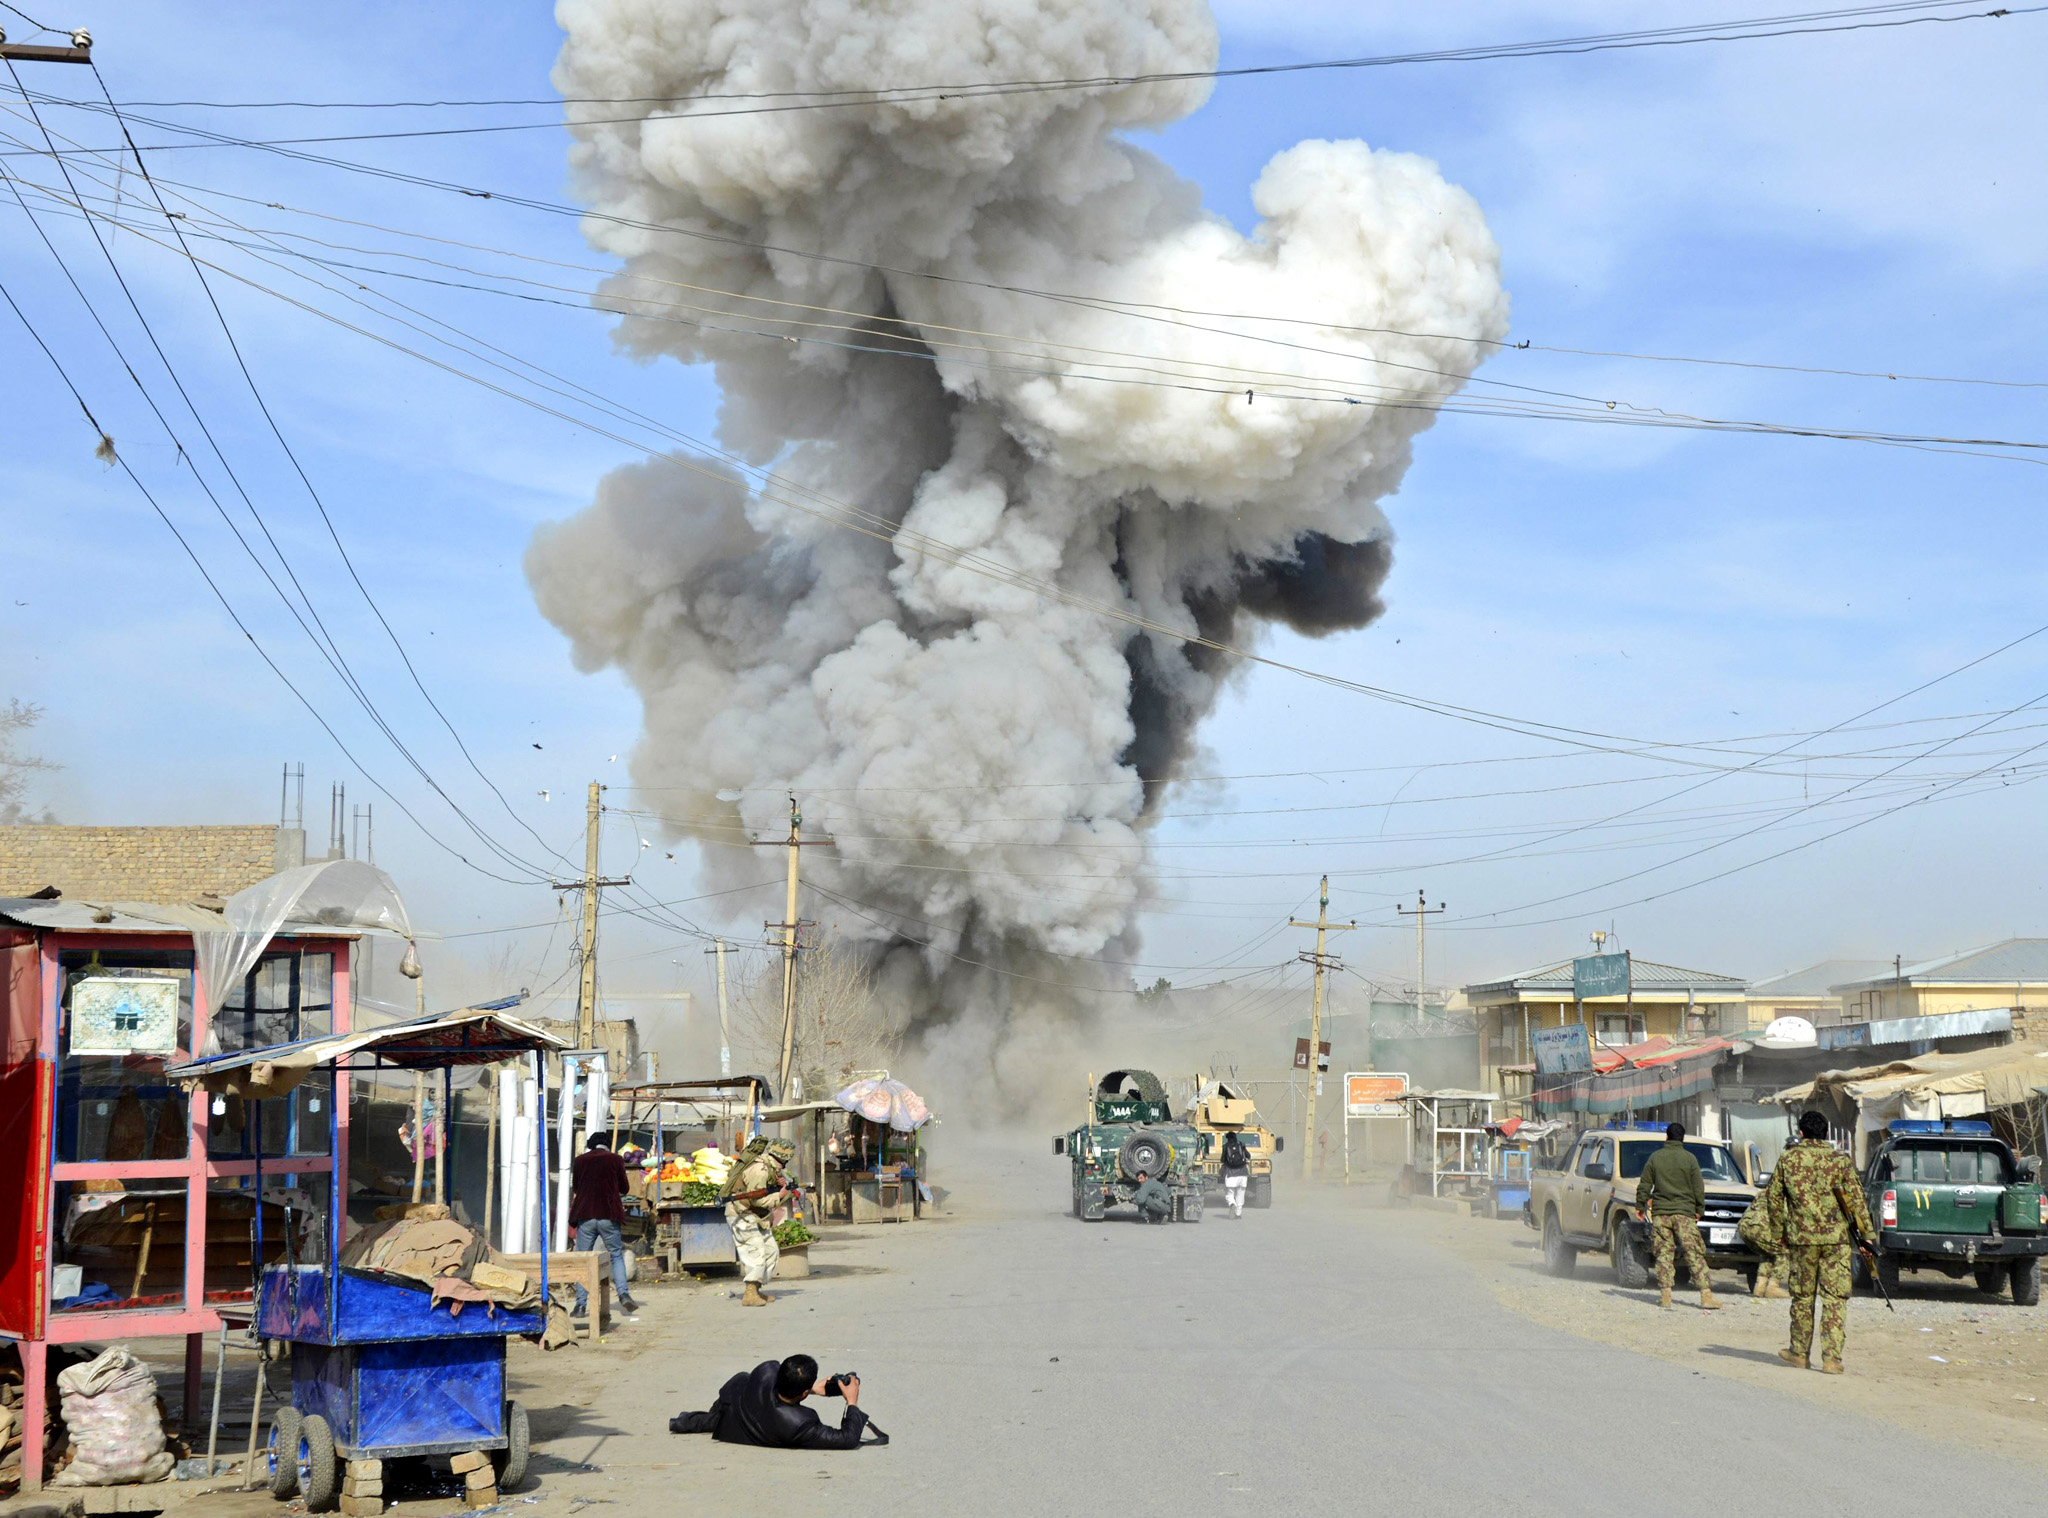 Smoke rises in the sky after a suicide car bomb attack in Kunduz province February 10, 2015. Taliban insurgents launched an attack on a police headquarters in northern Afghanistan, provincial police spokesman Sayed Sarwar Hosseini said. At least two policemen were wounded in the attack, and five suicide attackers were killed by Afghan forces, Hosseini reported.  REUTERS/Stringer (AFGHANISTAN - Tags: CIVIL UNREST TPX IMAGES OF THE DAY)